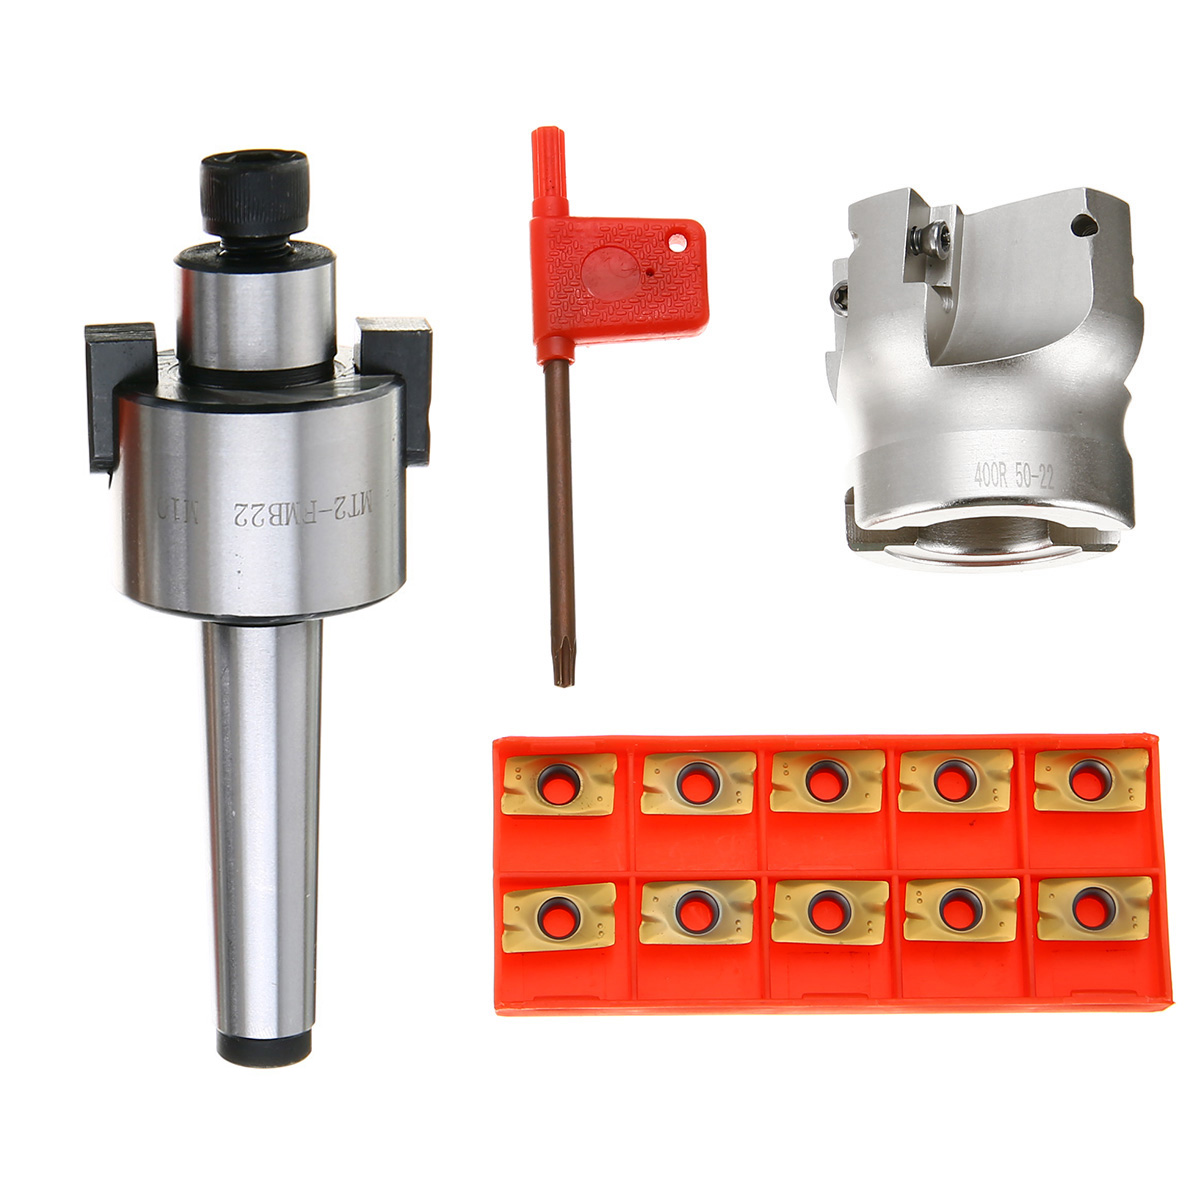 MT2 Face Mill Cutter 400R 50mm Face End Mill Cutter 4 Flute + 10pcs APMT1604 Carbide Inserts With Wrench For Plate Cutting 1pc bap 400r 80 27 6f 6 flutes face end mill cutter with 10pcs apmt1604pder inserts for milling machine